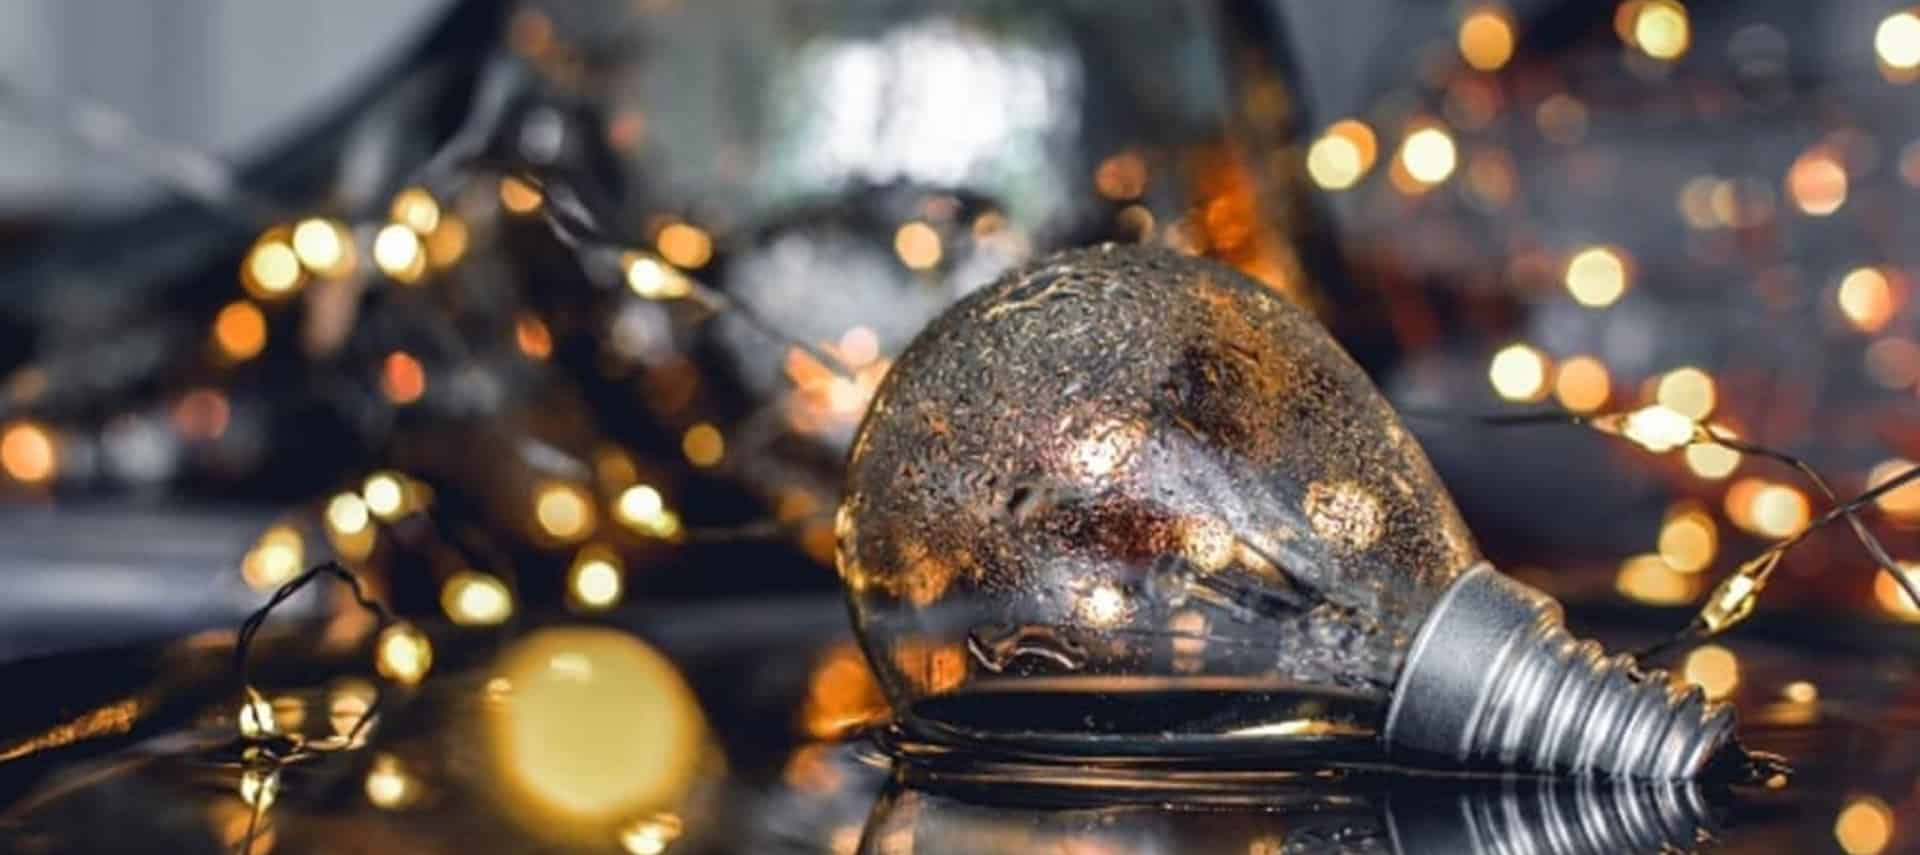 A brushed silver lightbulb laying on a table next to tiny white Christmas lights.